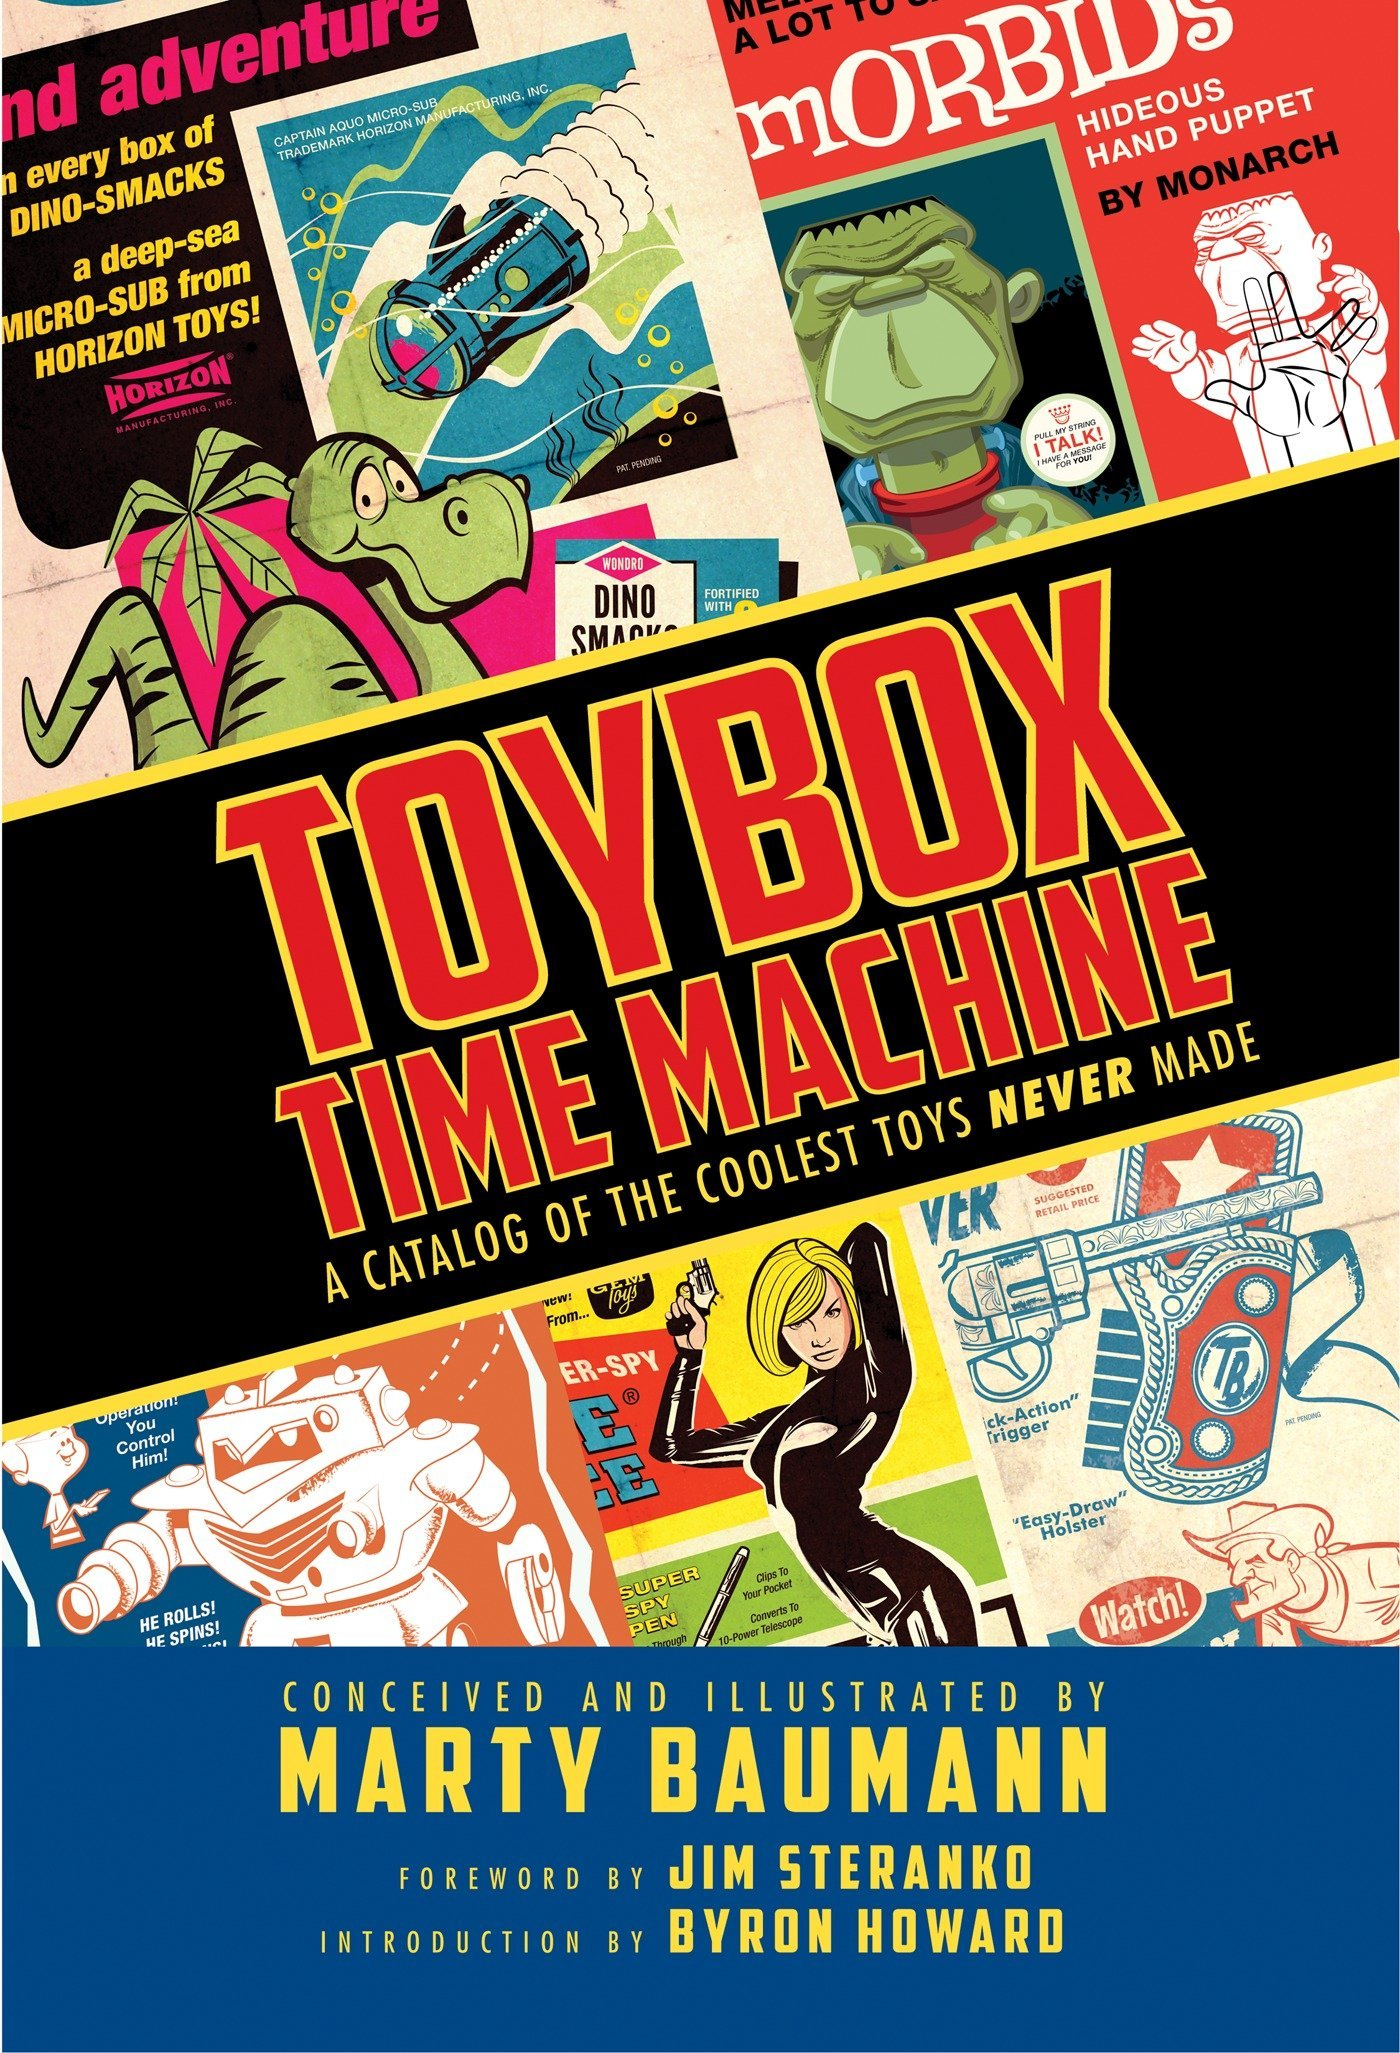 Toybox Time Machine: A Catalog of the Coolest Toys Never Made pdf